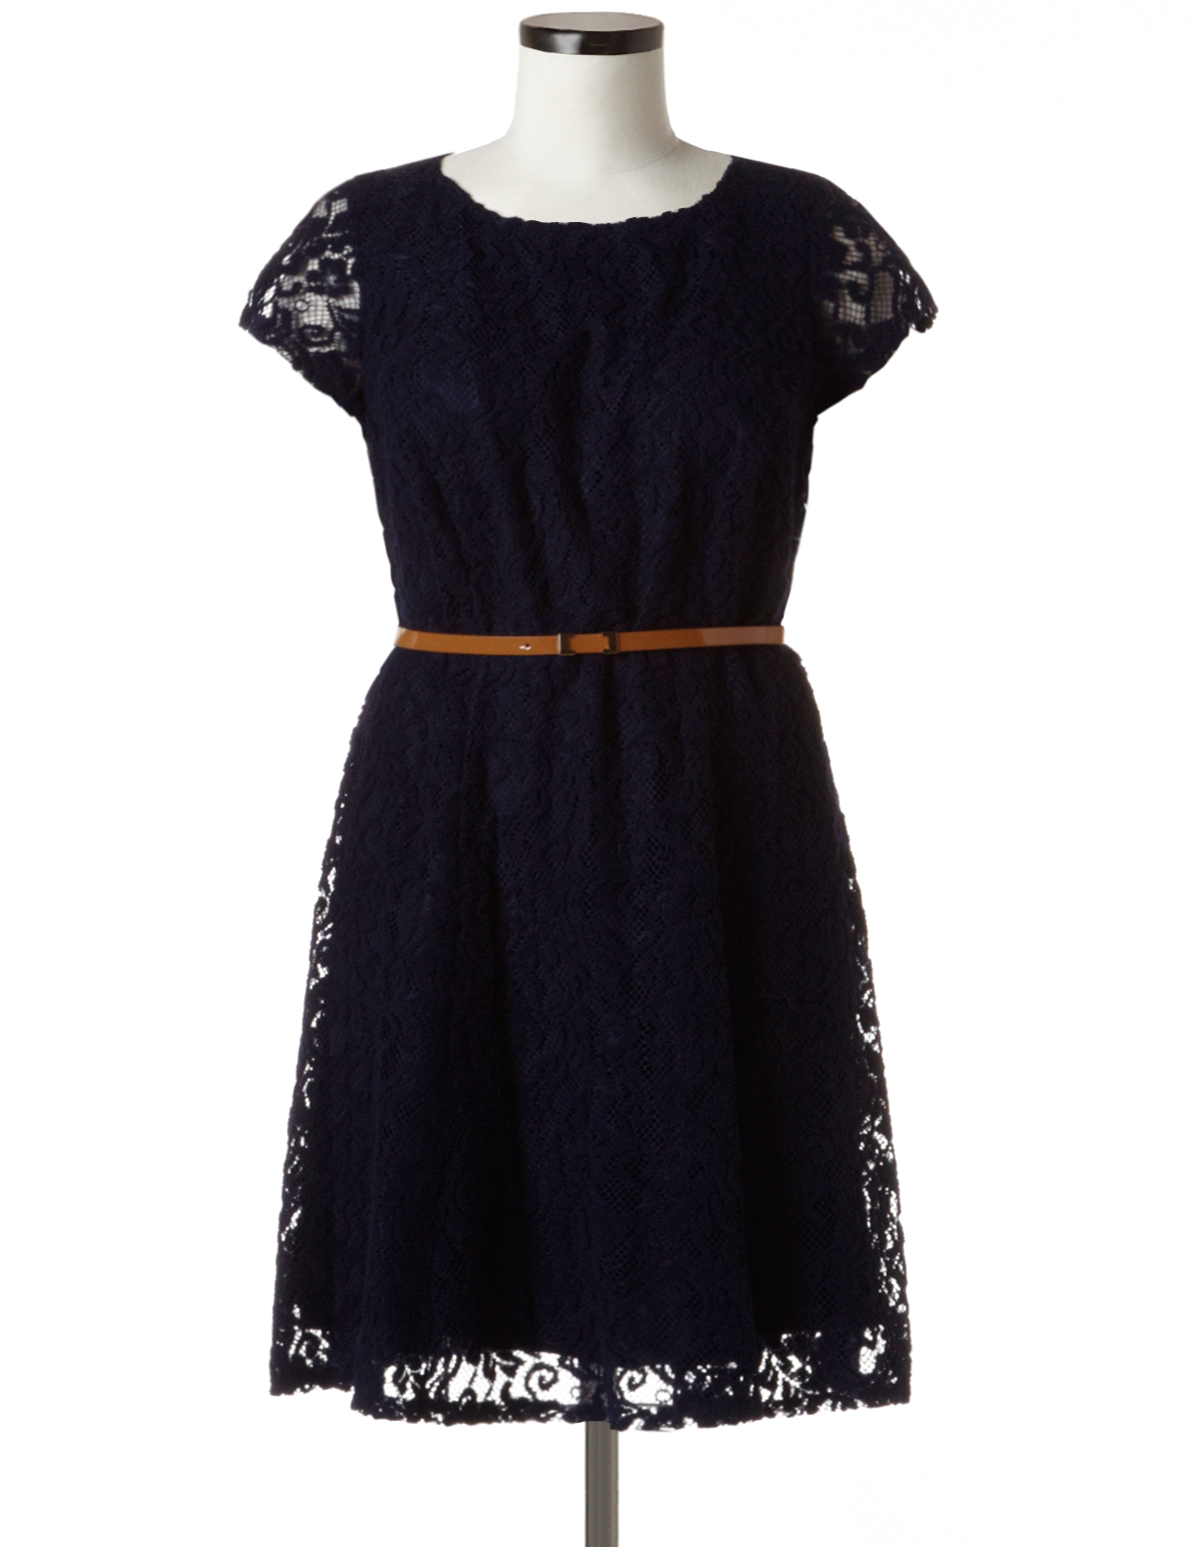 7c73c25f1e9 Plus Size Lace Fit and Flare Dress